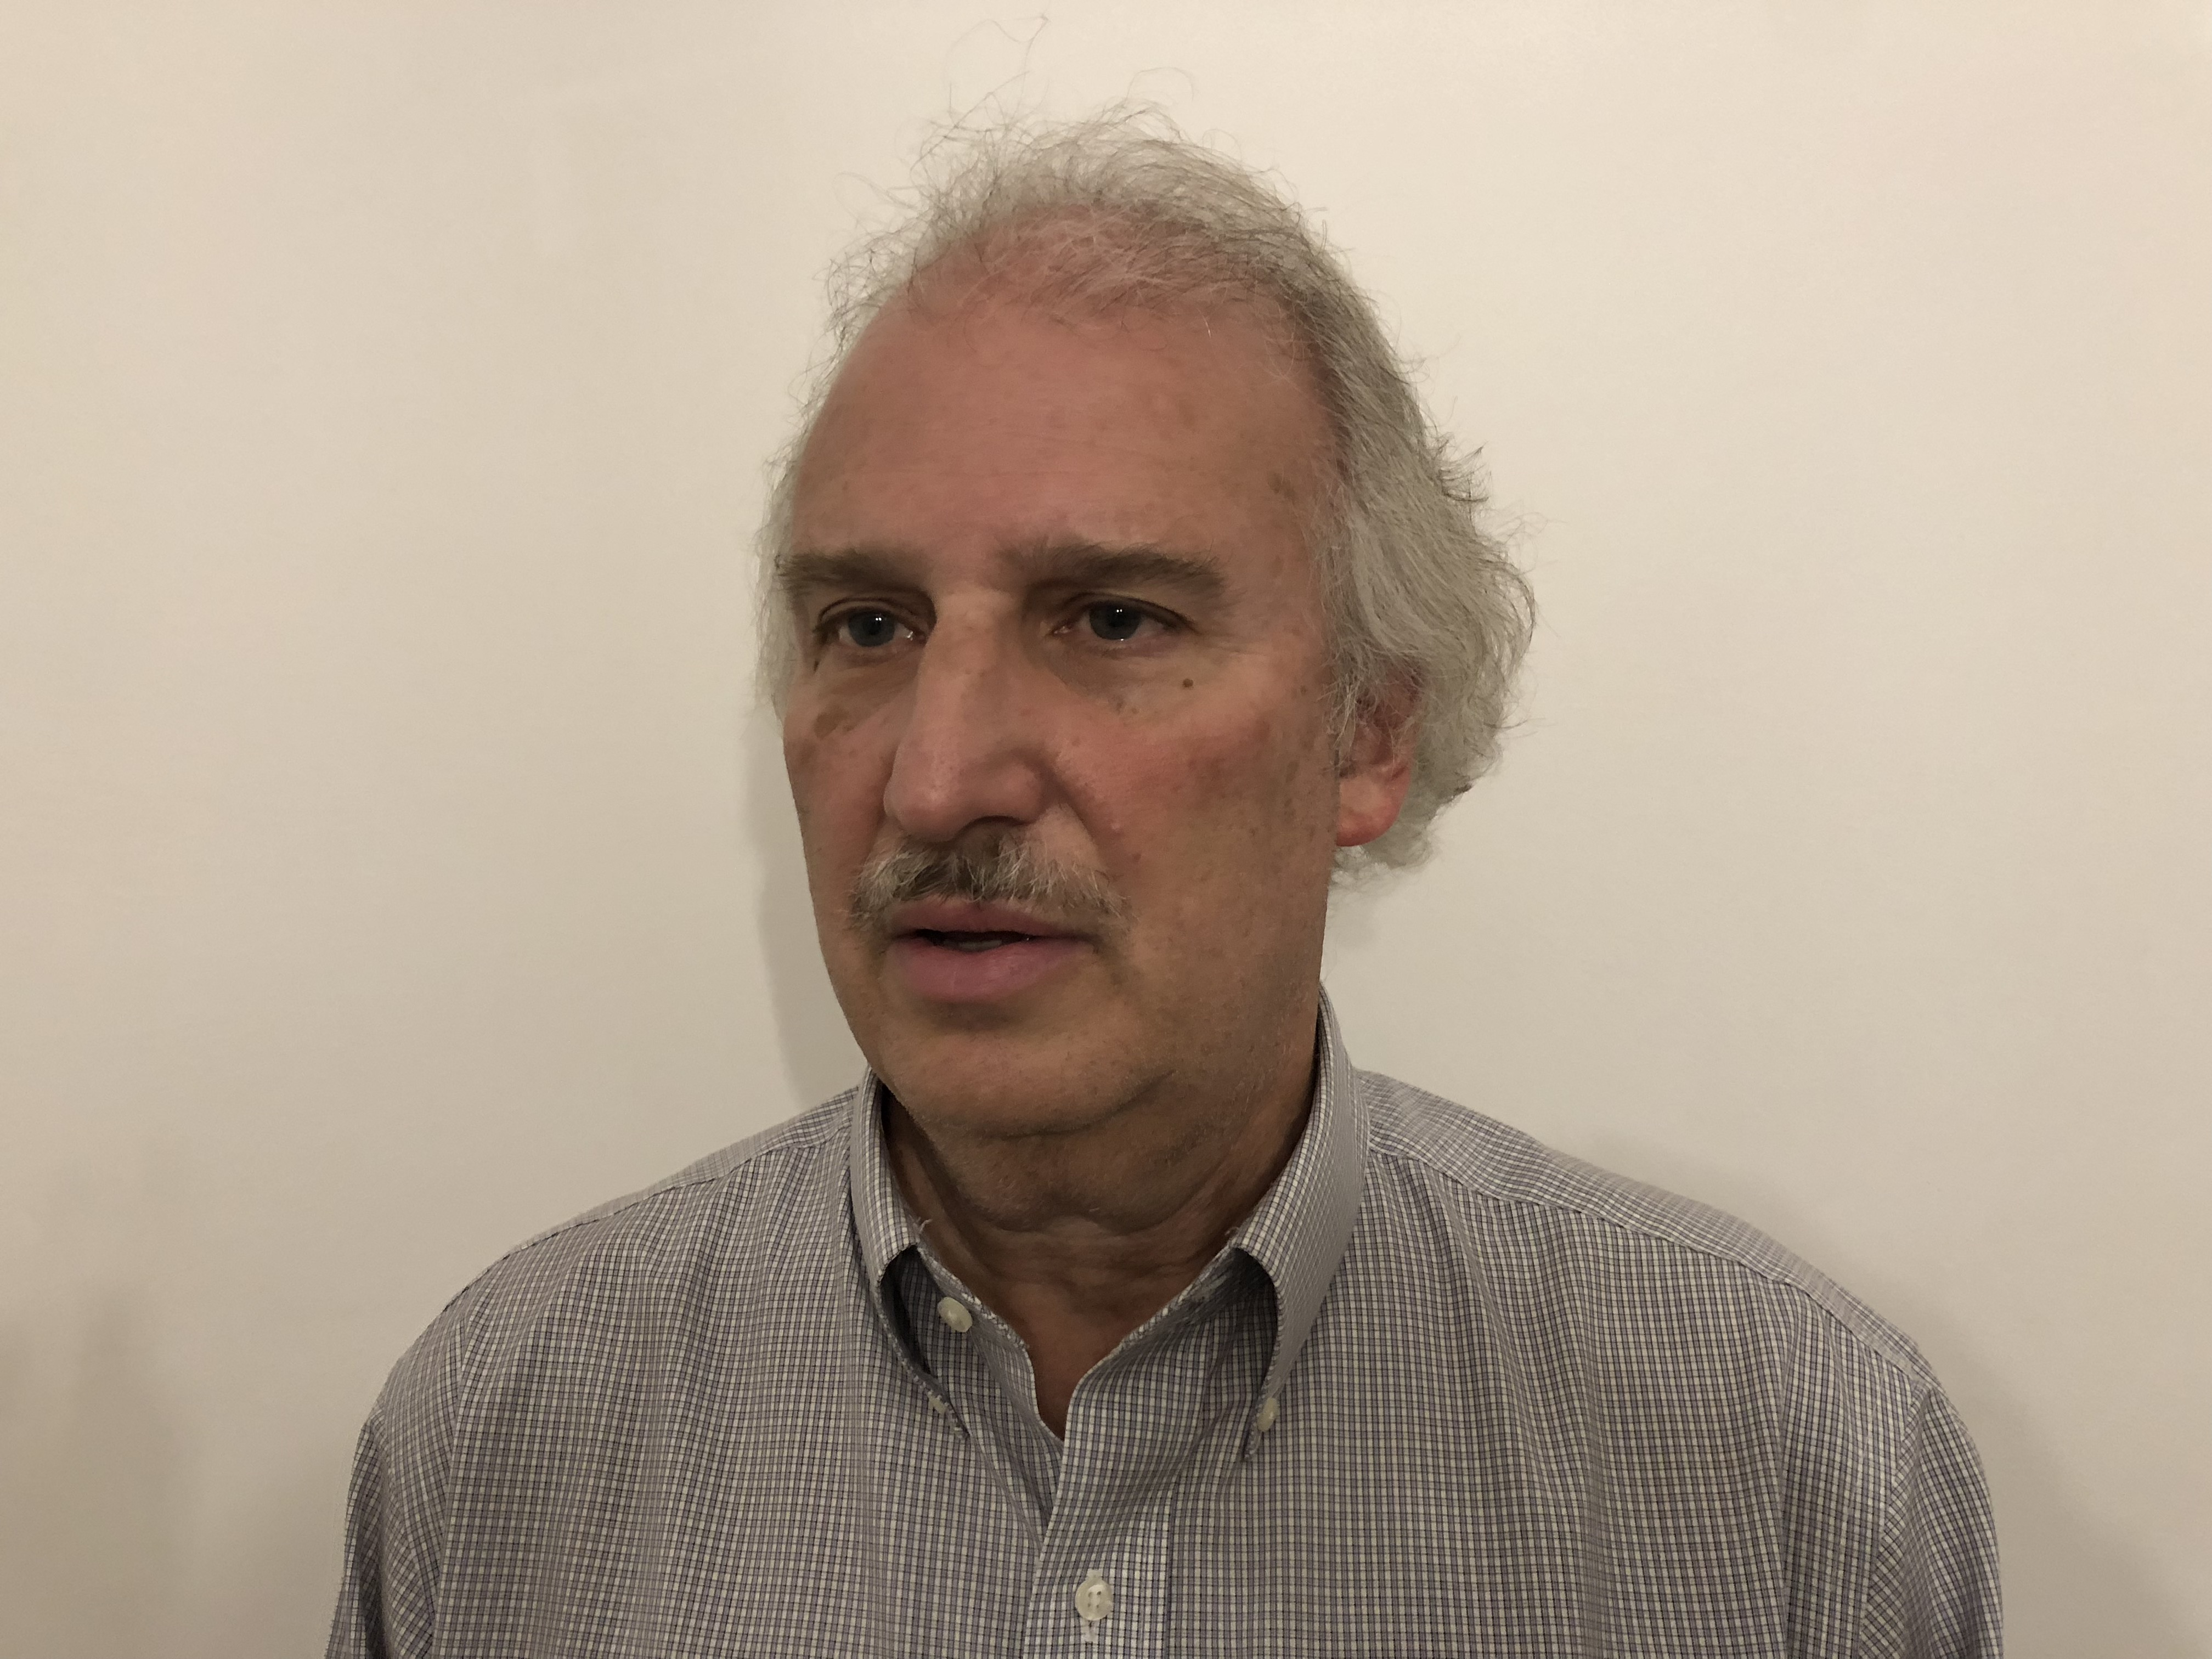 Larry Garber was the co-director of joint International Republican Institute/National Democratic Institute observer mission to Zimbabwe's July 30 general election. (C. Mavhunga/VOA)